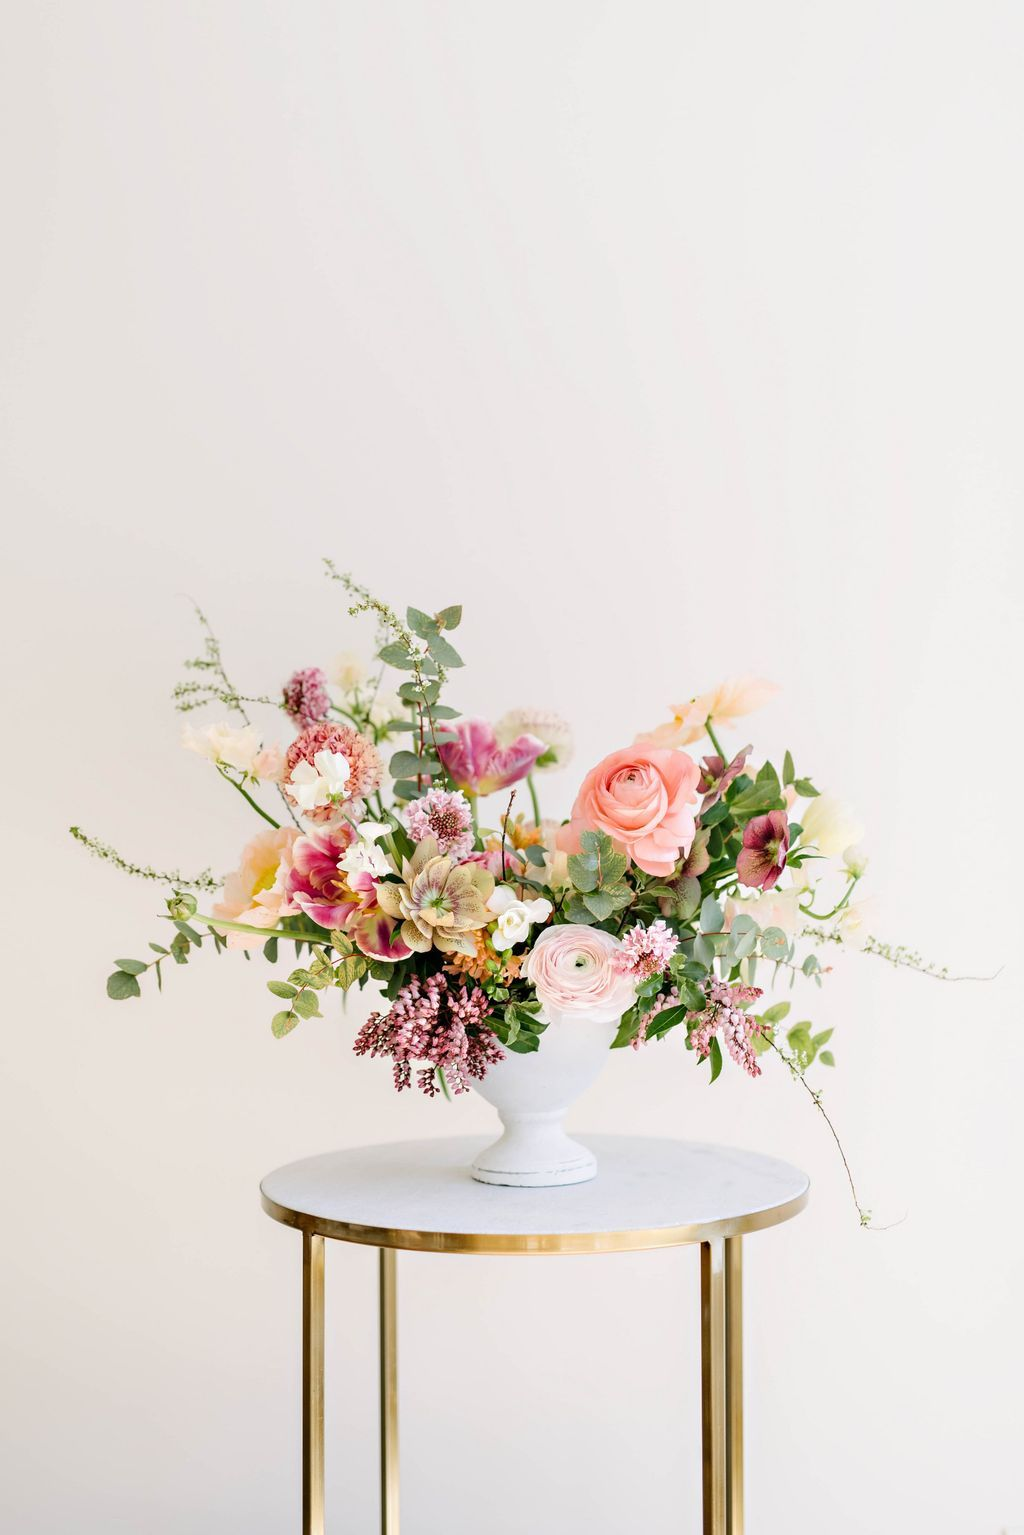 98 Simple Spring Wedding Centerpieces Ideas You Will Love